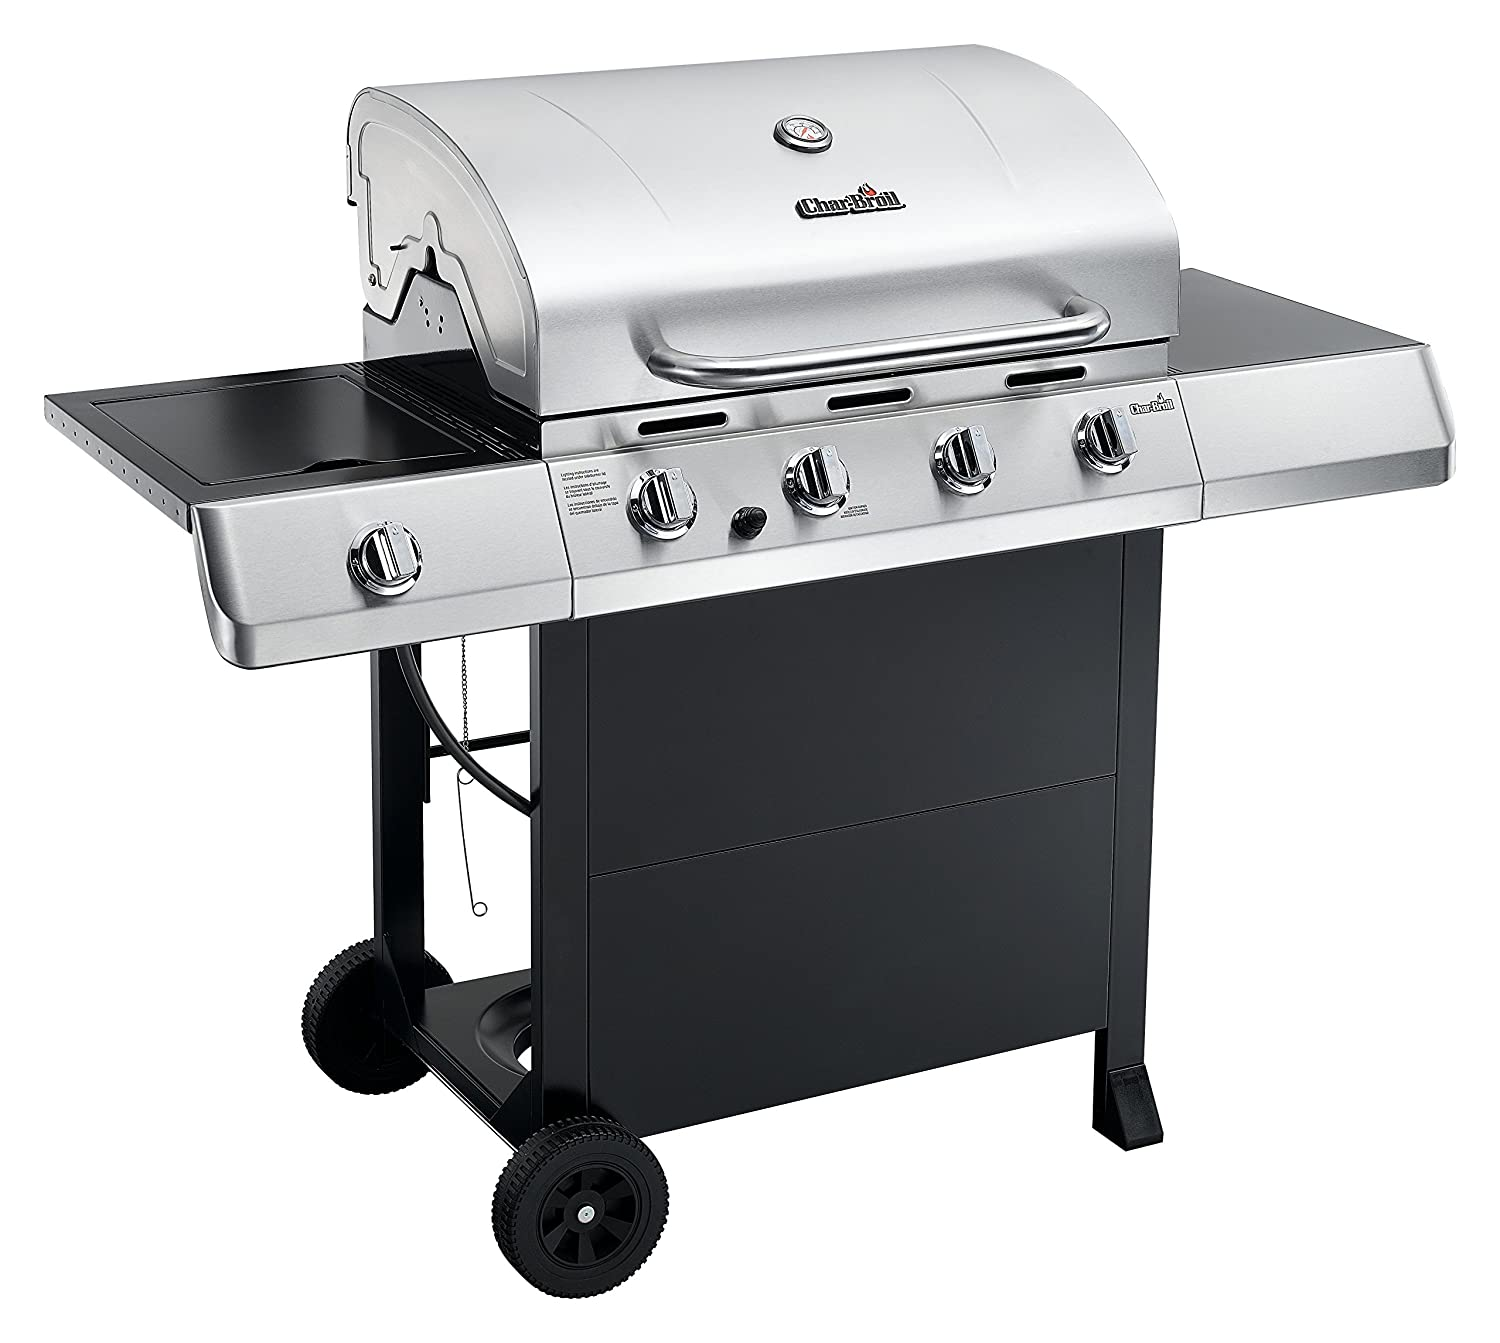 amazon com char broil classic 4 burner gas grill with side